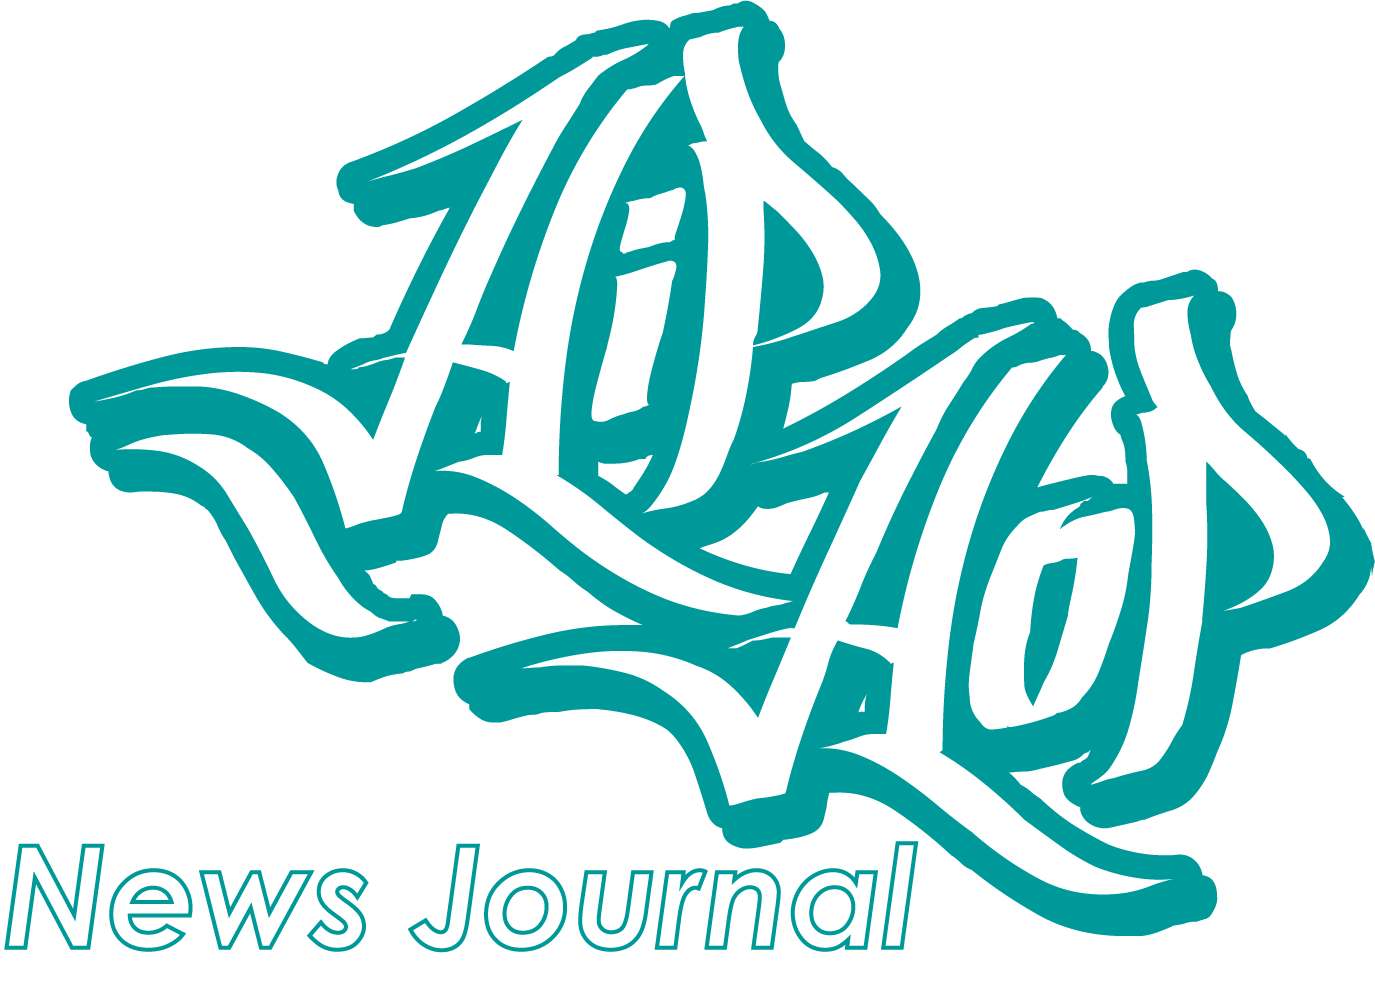 Hip Hop News Journal